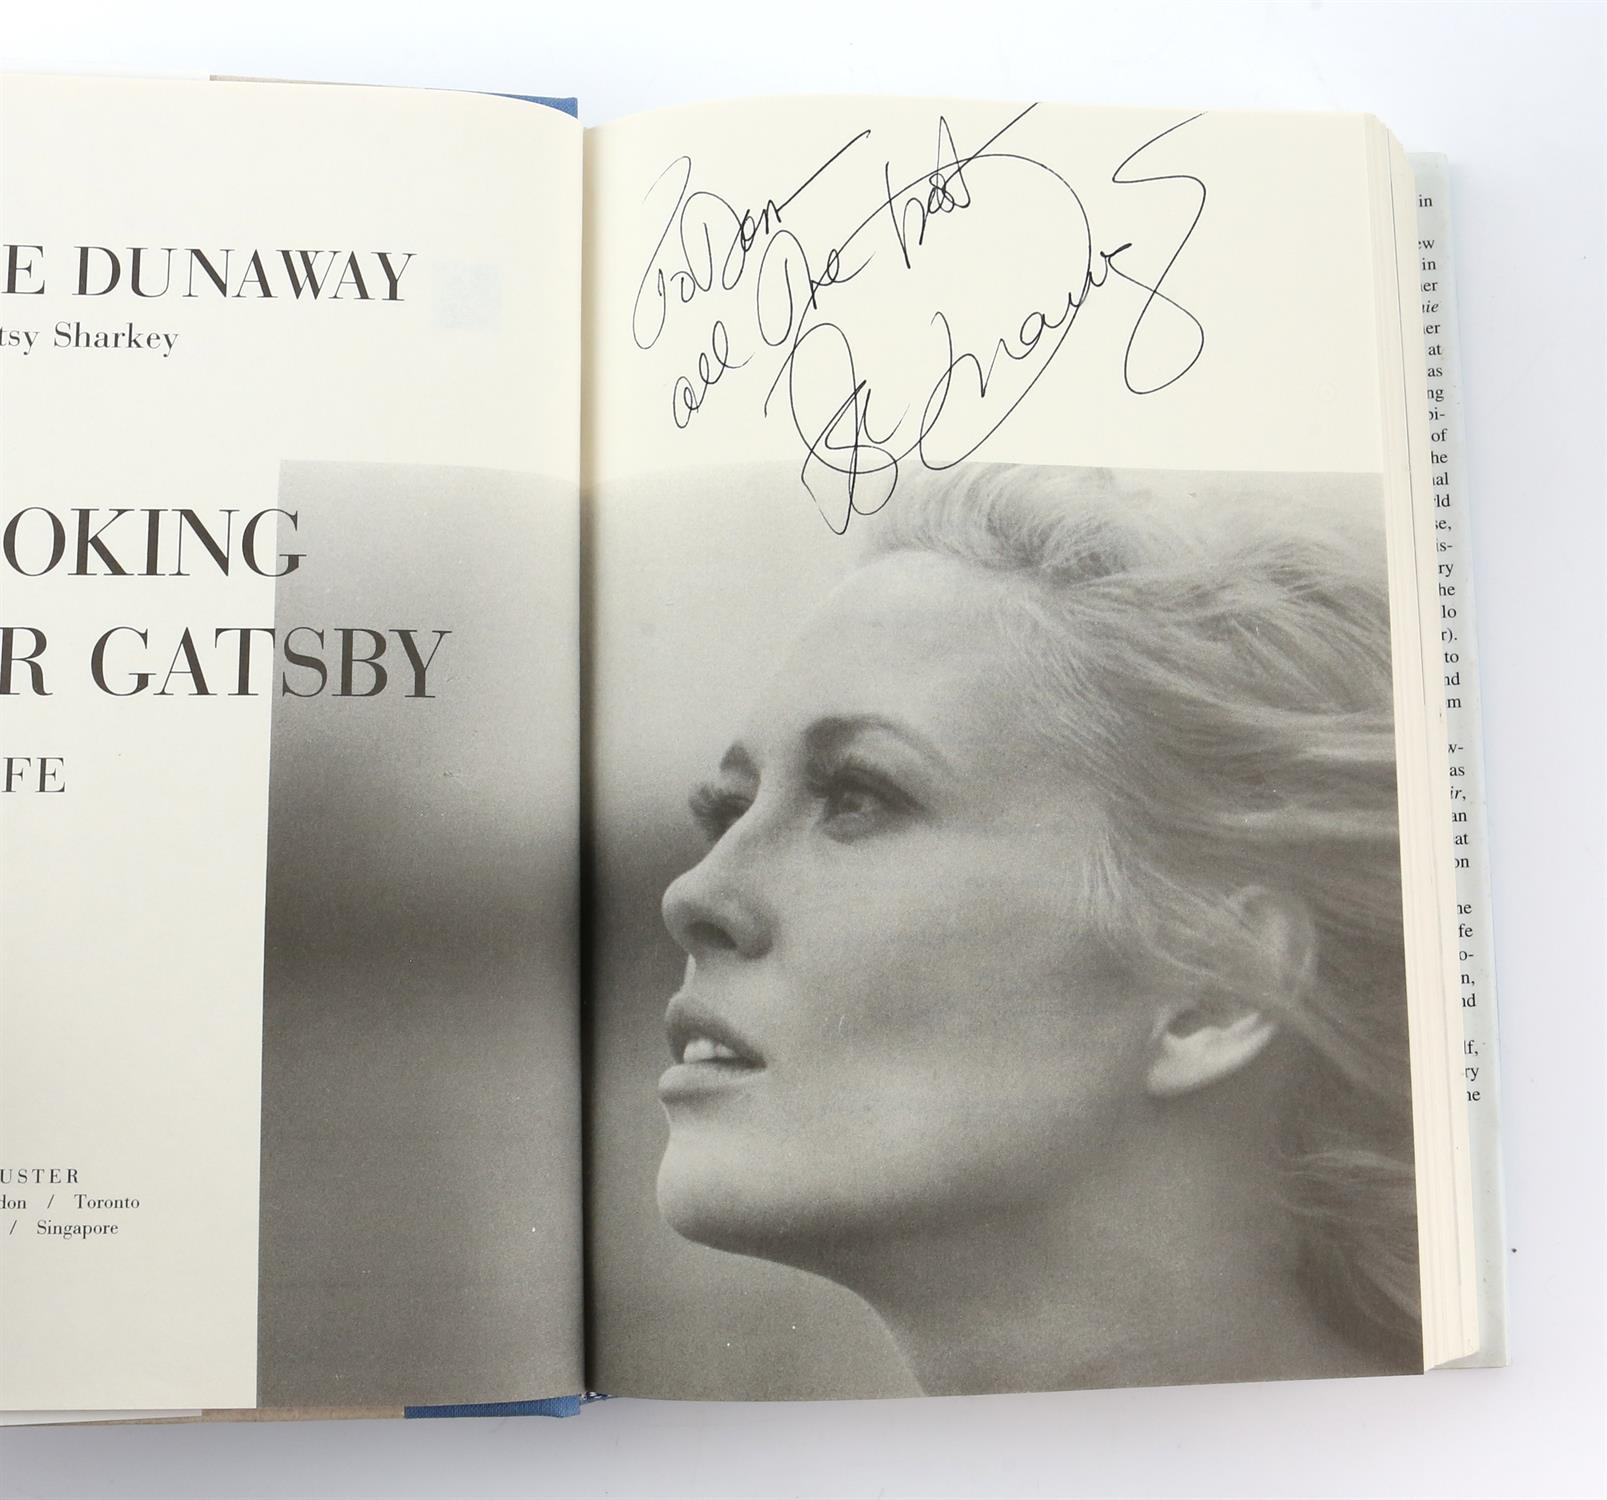 9 autographed books signed by Lauren Bacall, Richard Todd, Michael Palin, Leslie Caron, - Image 7 of 10